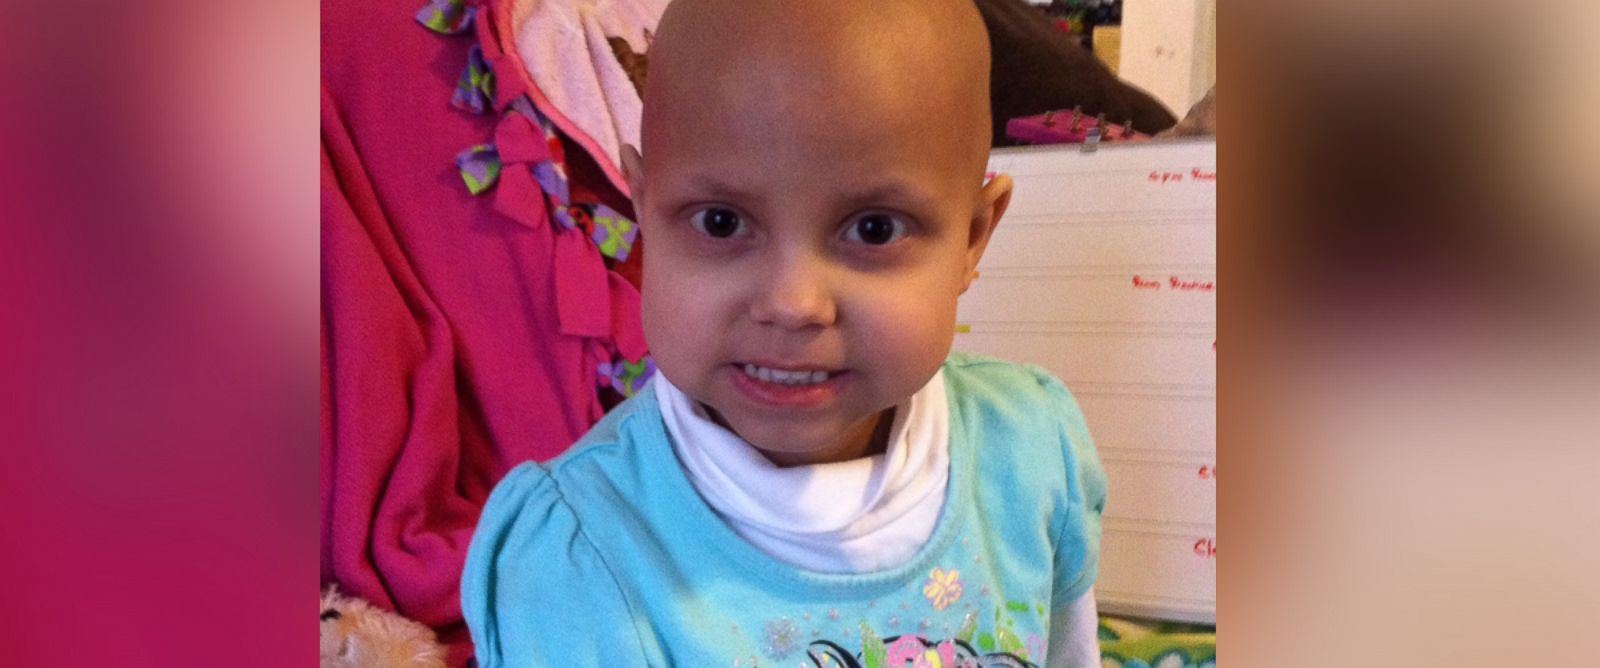 PHOTO: Brielle Kelly, who had a fantasy princess party last year during her treatment for cancer, has died. The Pennsylvania girl was five years old.